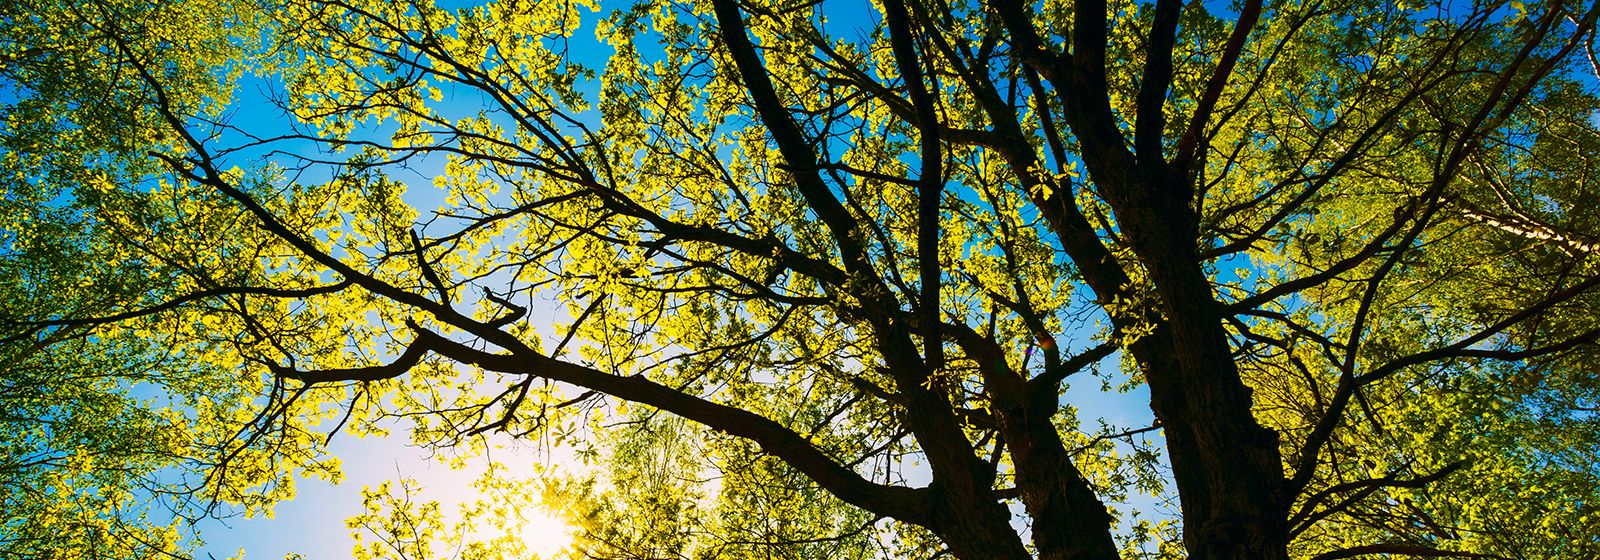 8 tips for healthy trees